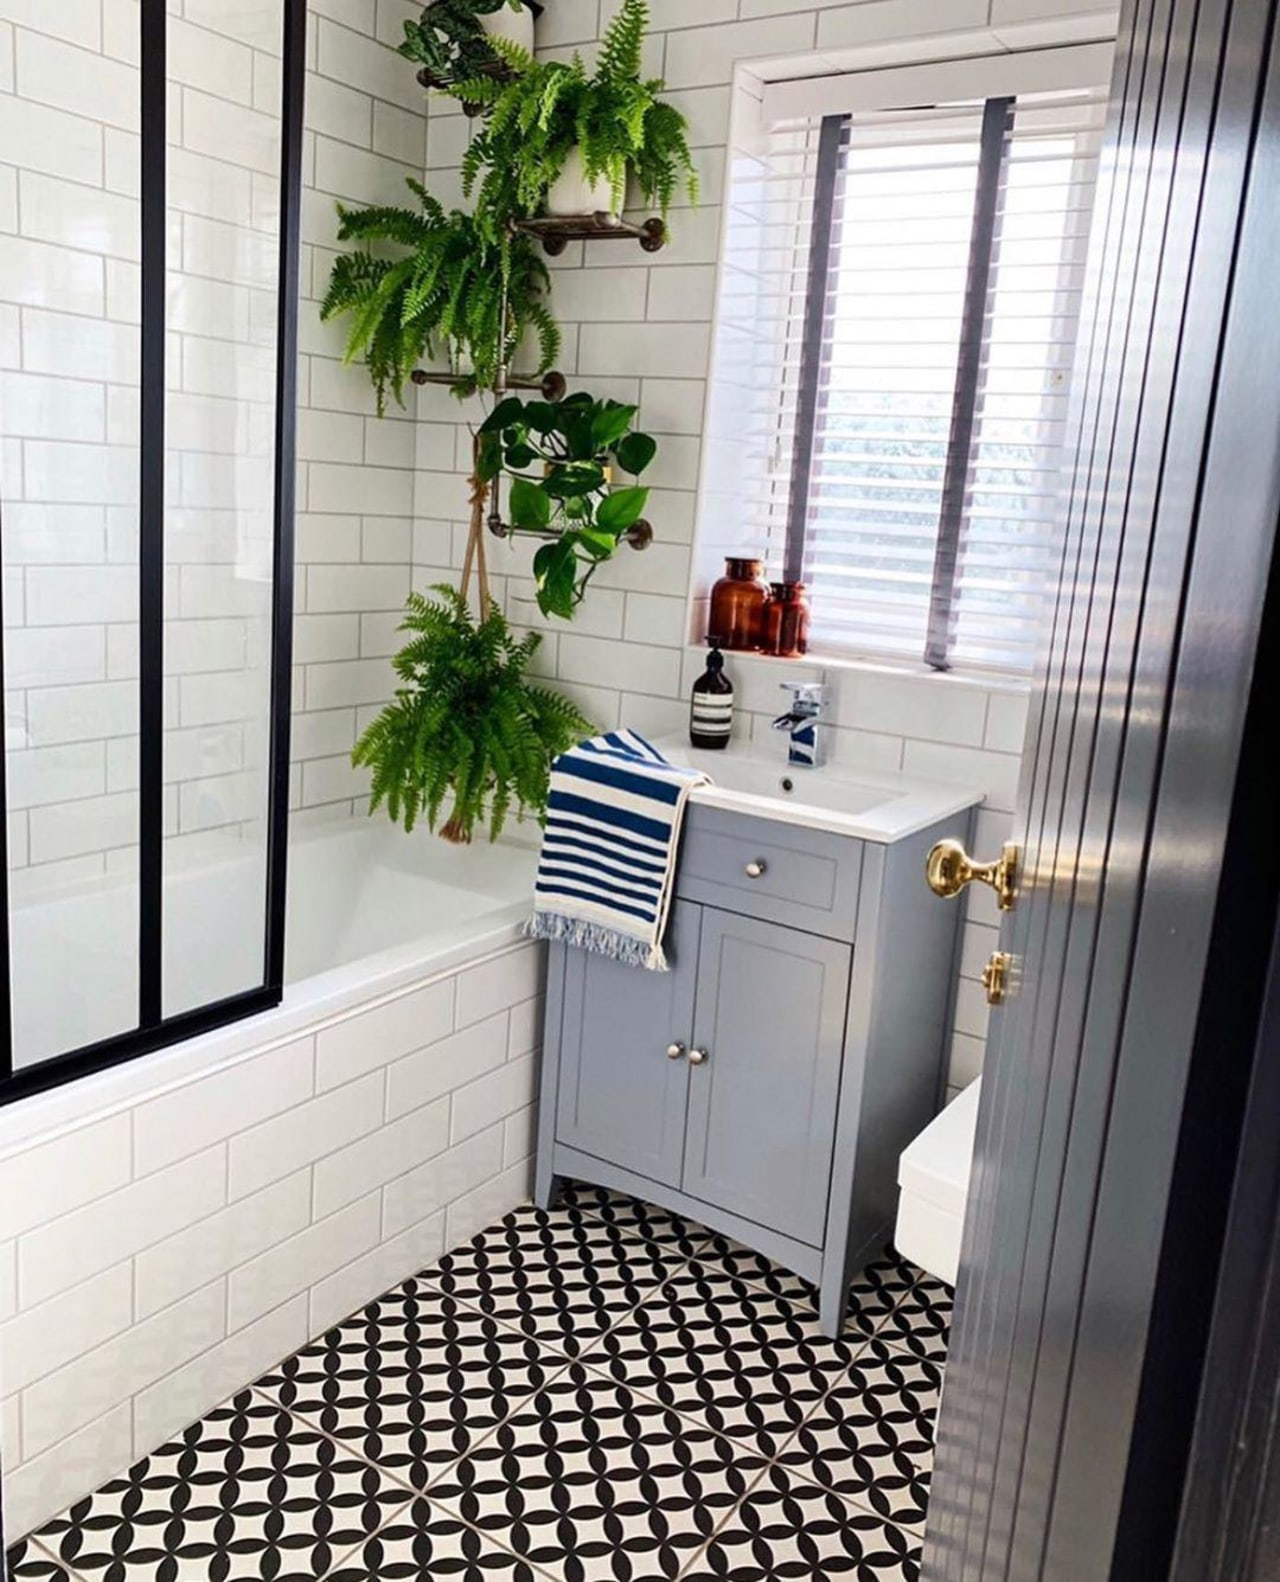 Laying plants in the bathroom is a great